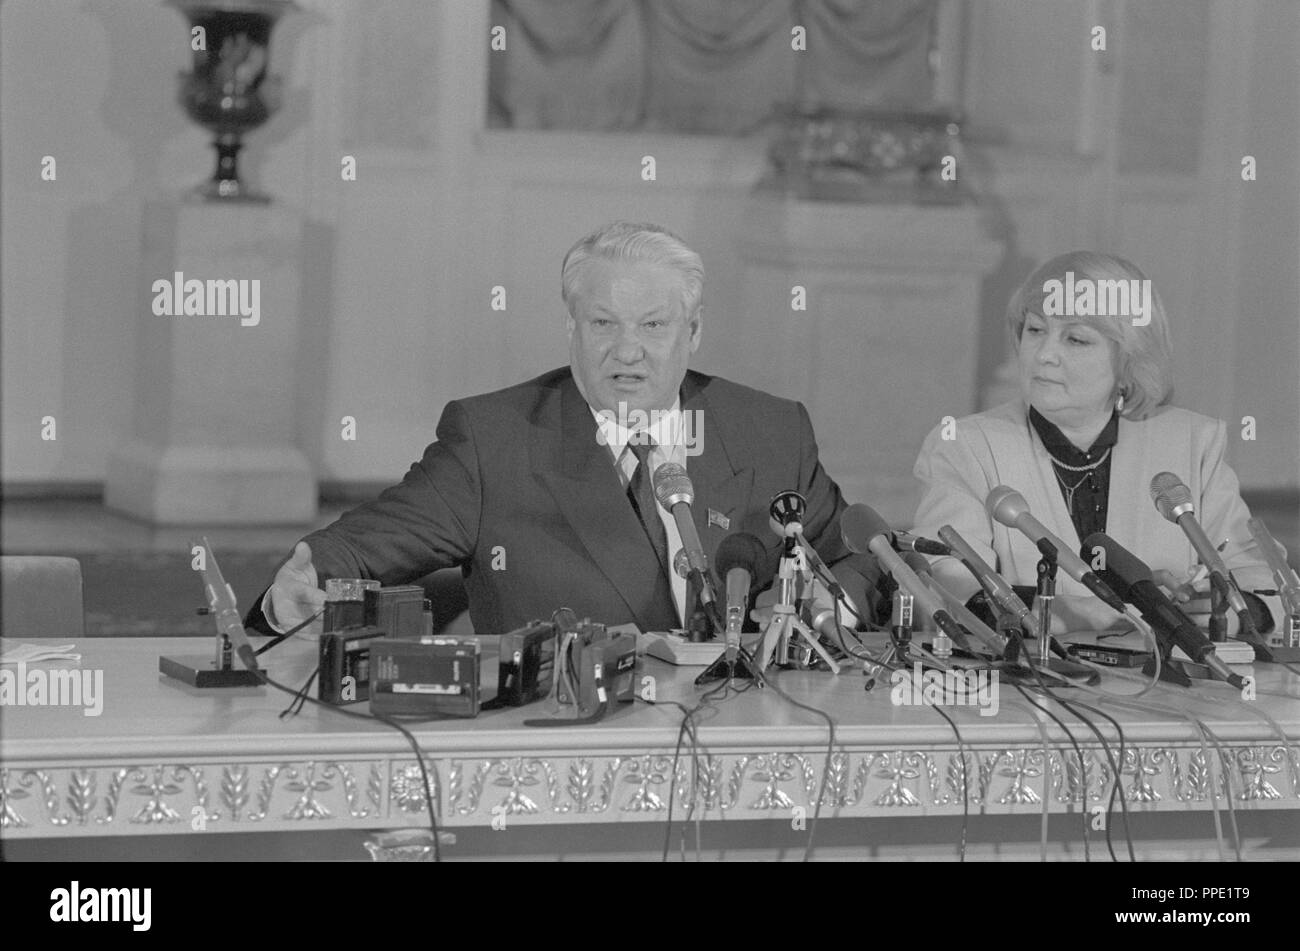 Moscow, Russia - March 28, 1991: Chairman of the Presidium of the Supreme Soviet of the Russian SFSR Boris Nikolayevich Yeltsin gives press conference at 3d extraordinary Congress of people's deputies of russian RSFSR. On the right his first press-secretary Valentina Alekseevna Lantseva. - Stock Image